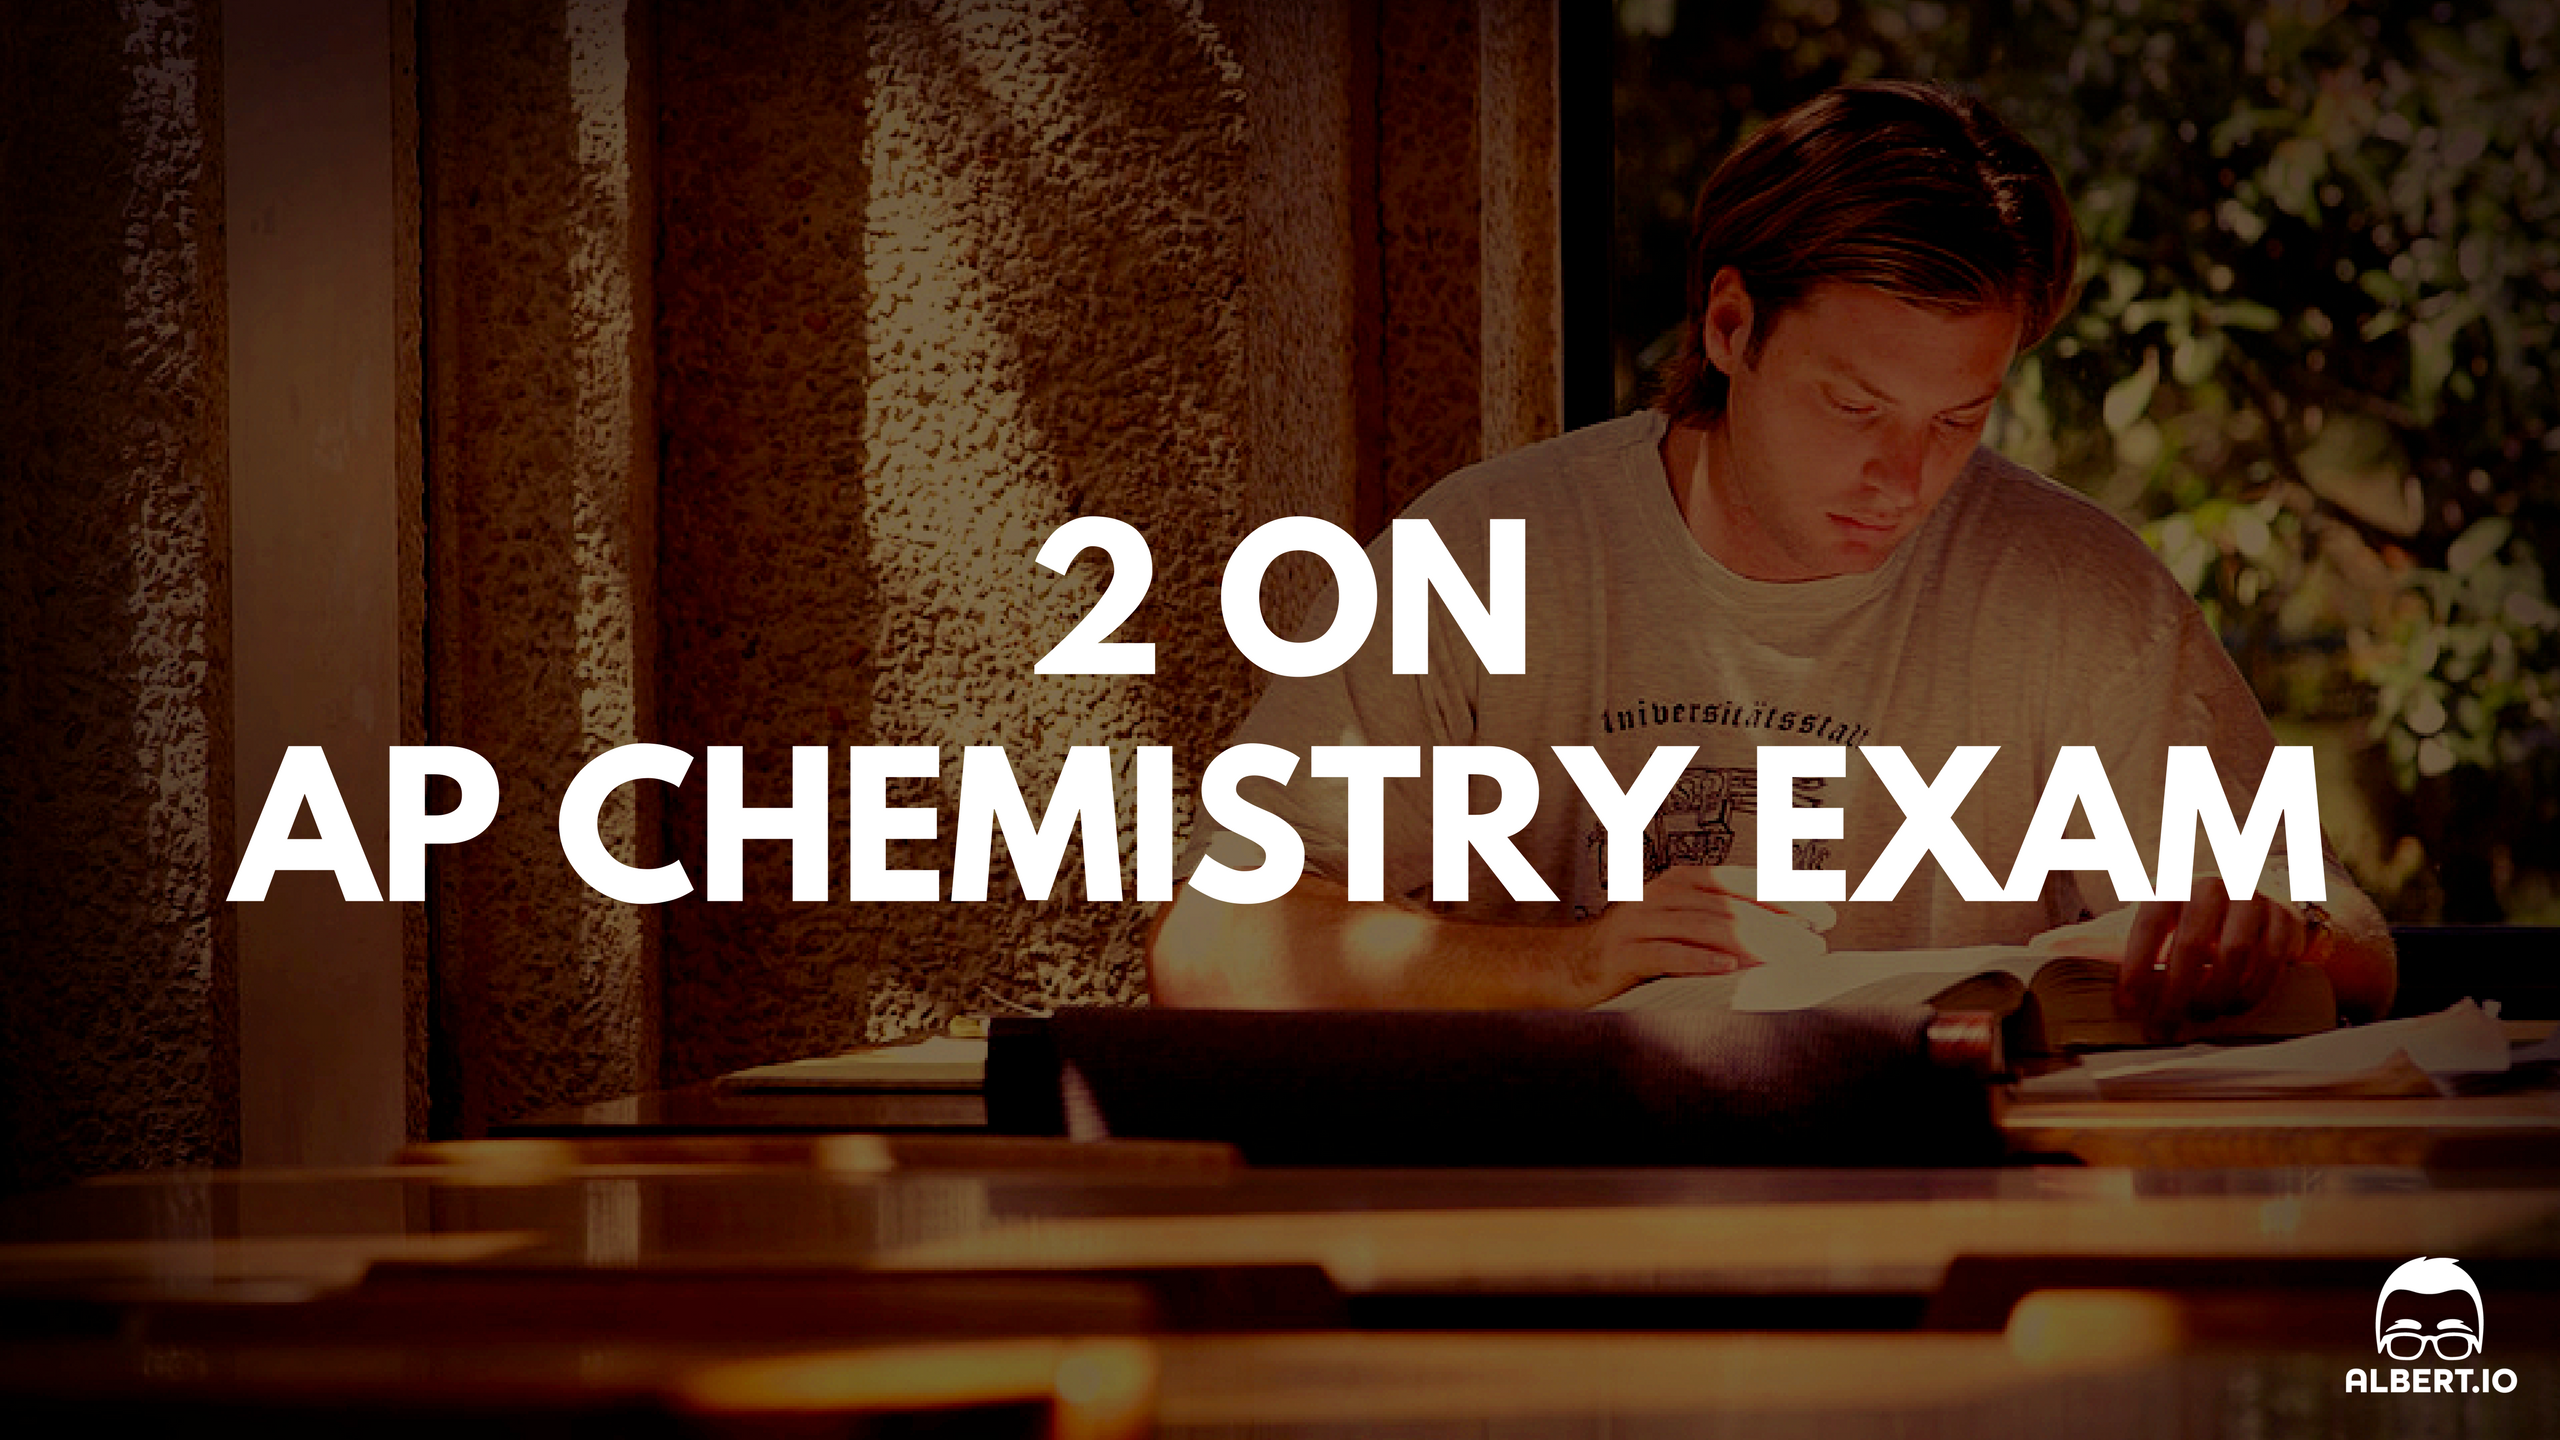 on ap chemistry how to retake improve and pass the exam  2 on ap chemistry exam